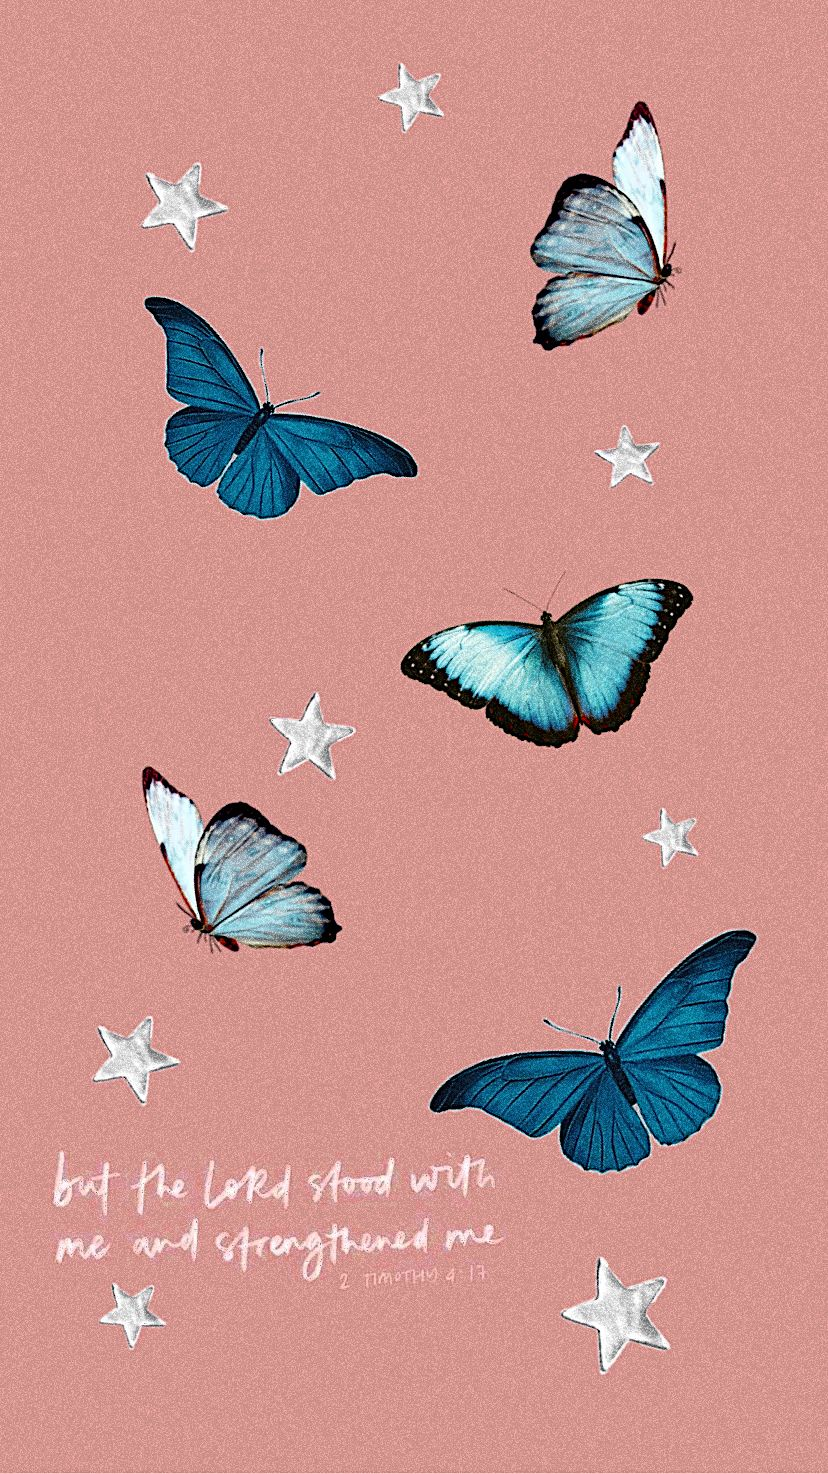 Christian vsco faith wallpaper iPhone blue butterflies